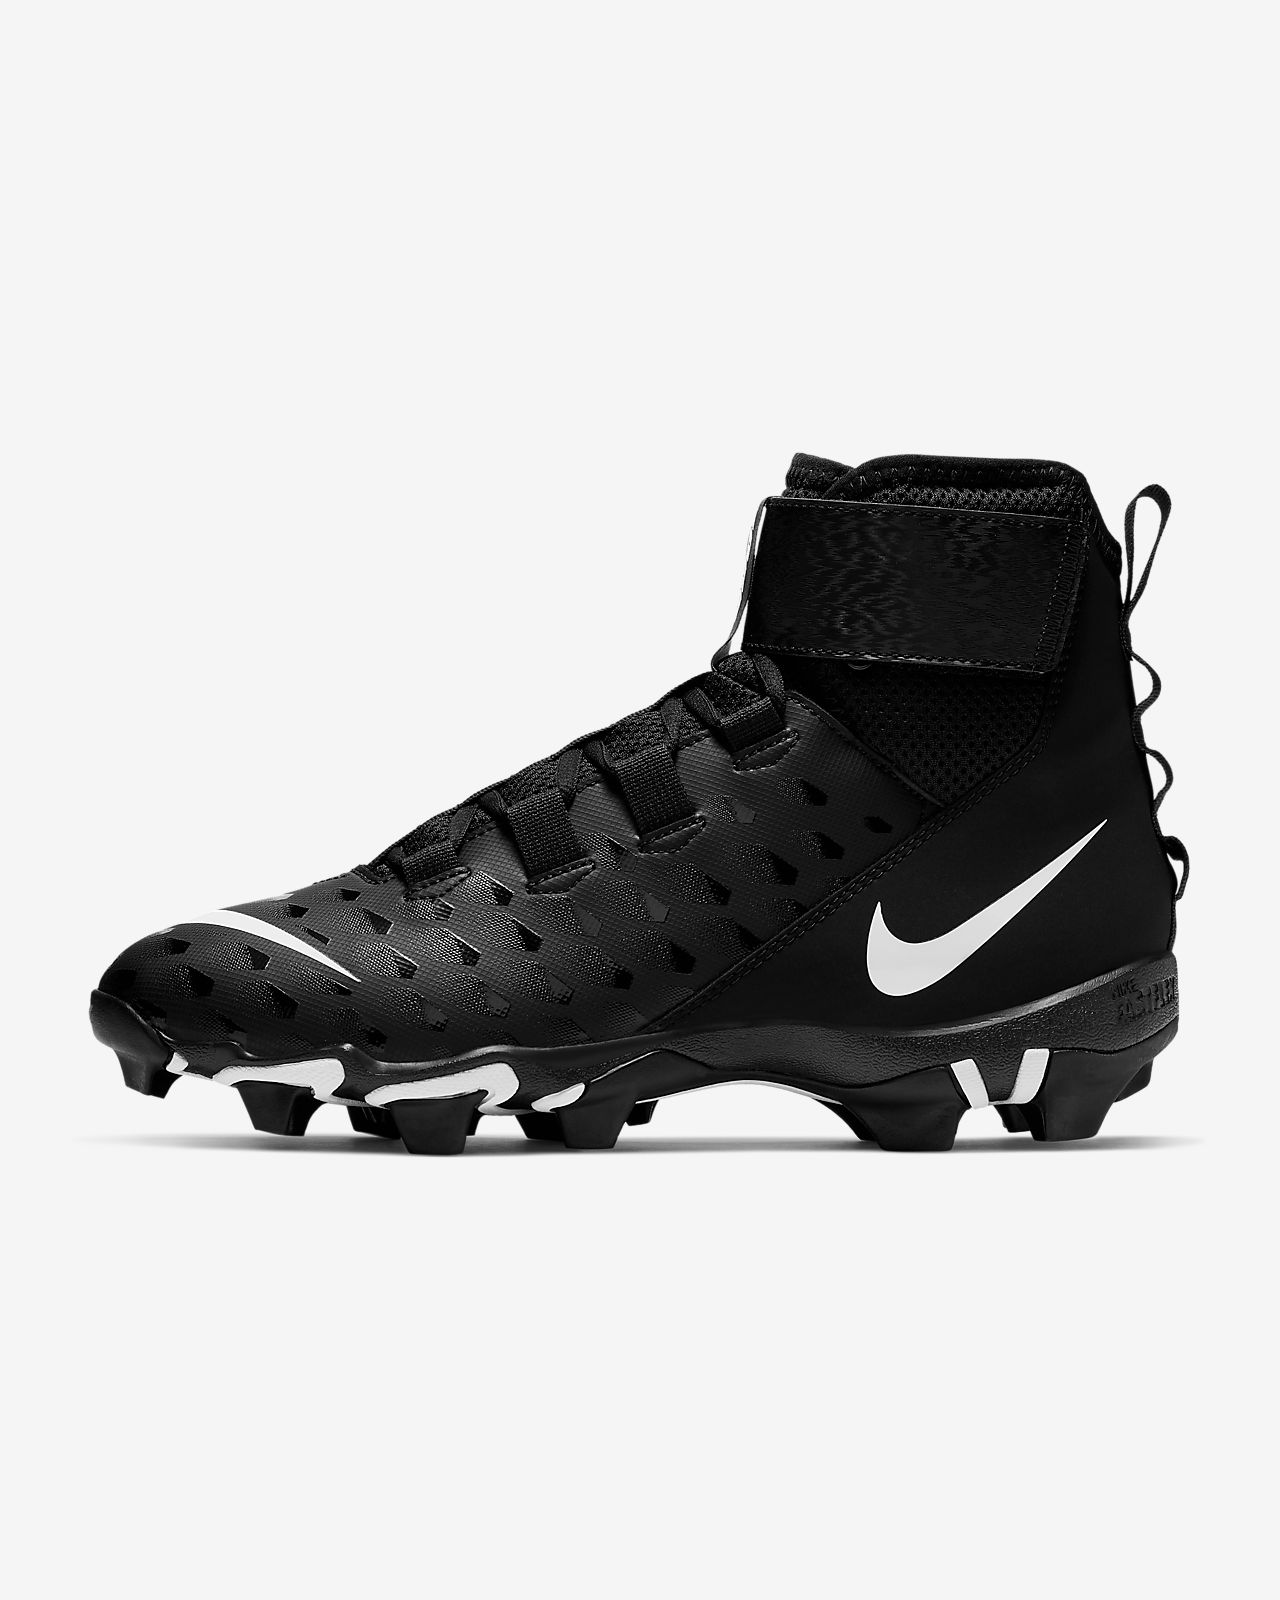 Nike Force Savage Shark 2 Men's Football Cleat